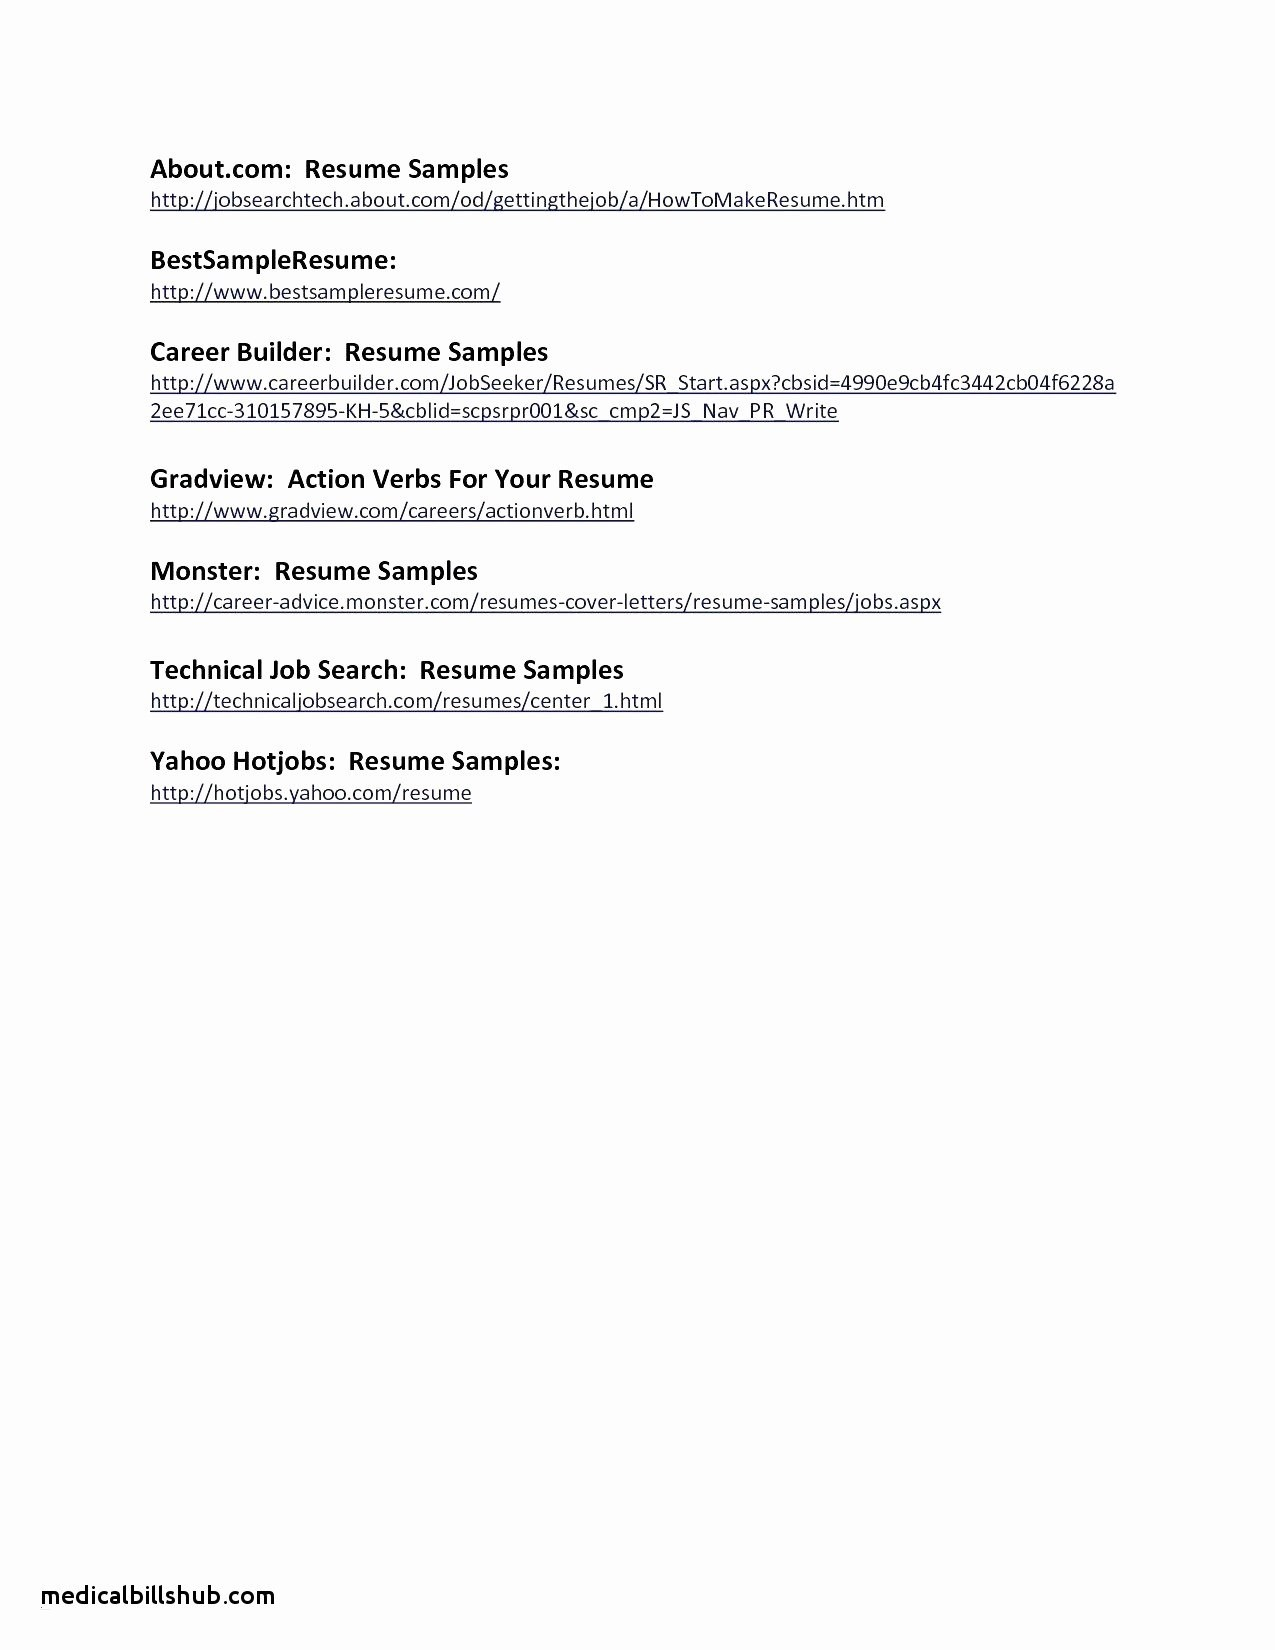 Medical assistant Resume Template Microsoft Word - Medical assistant Resume Template Inspirational Resume Template for